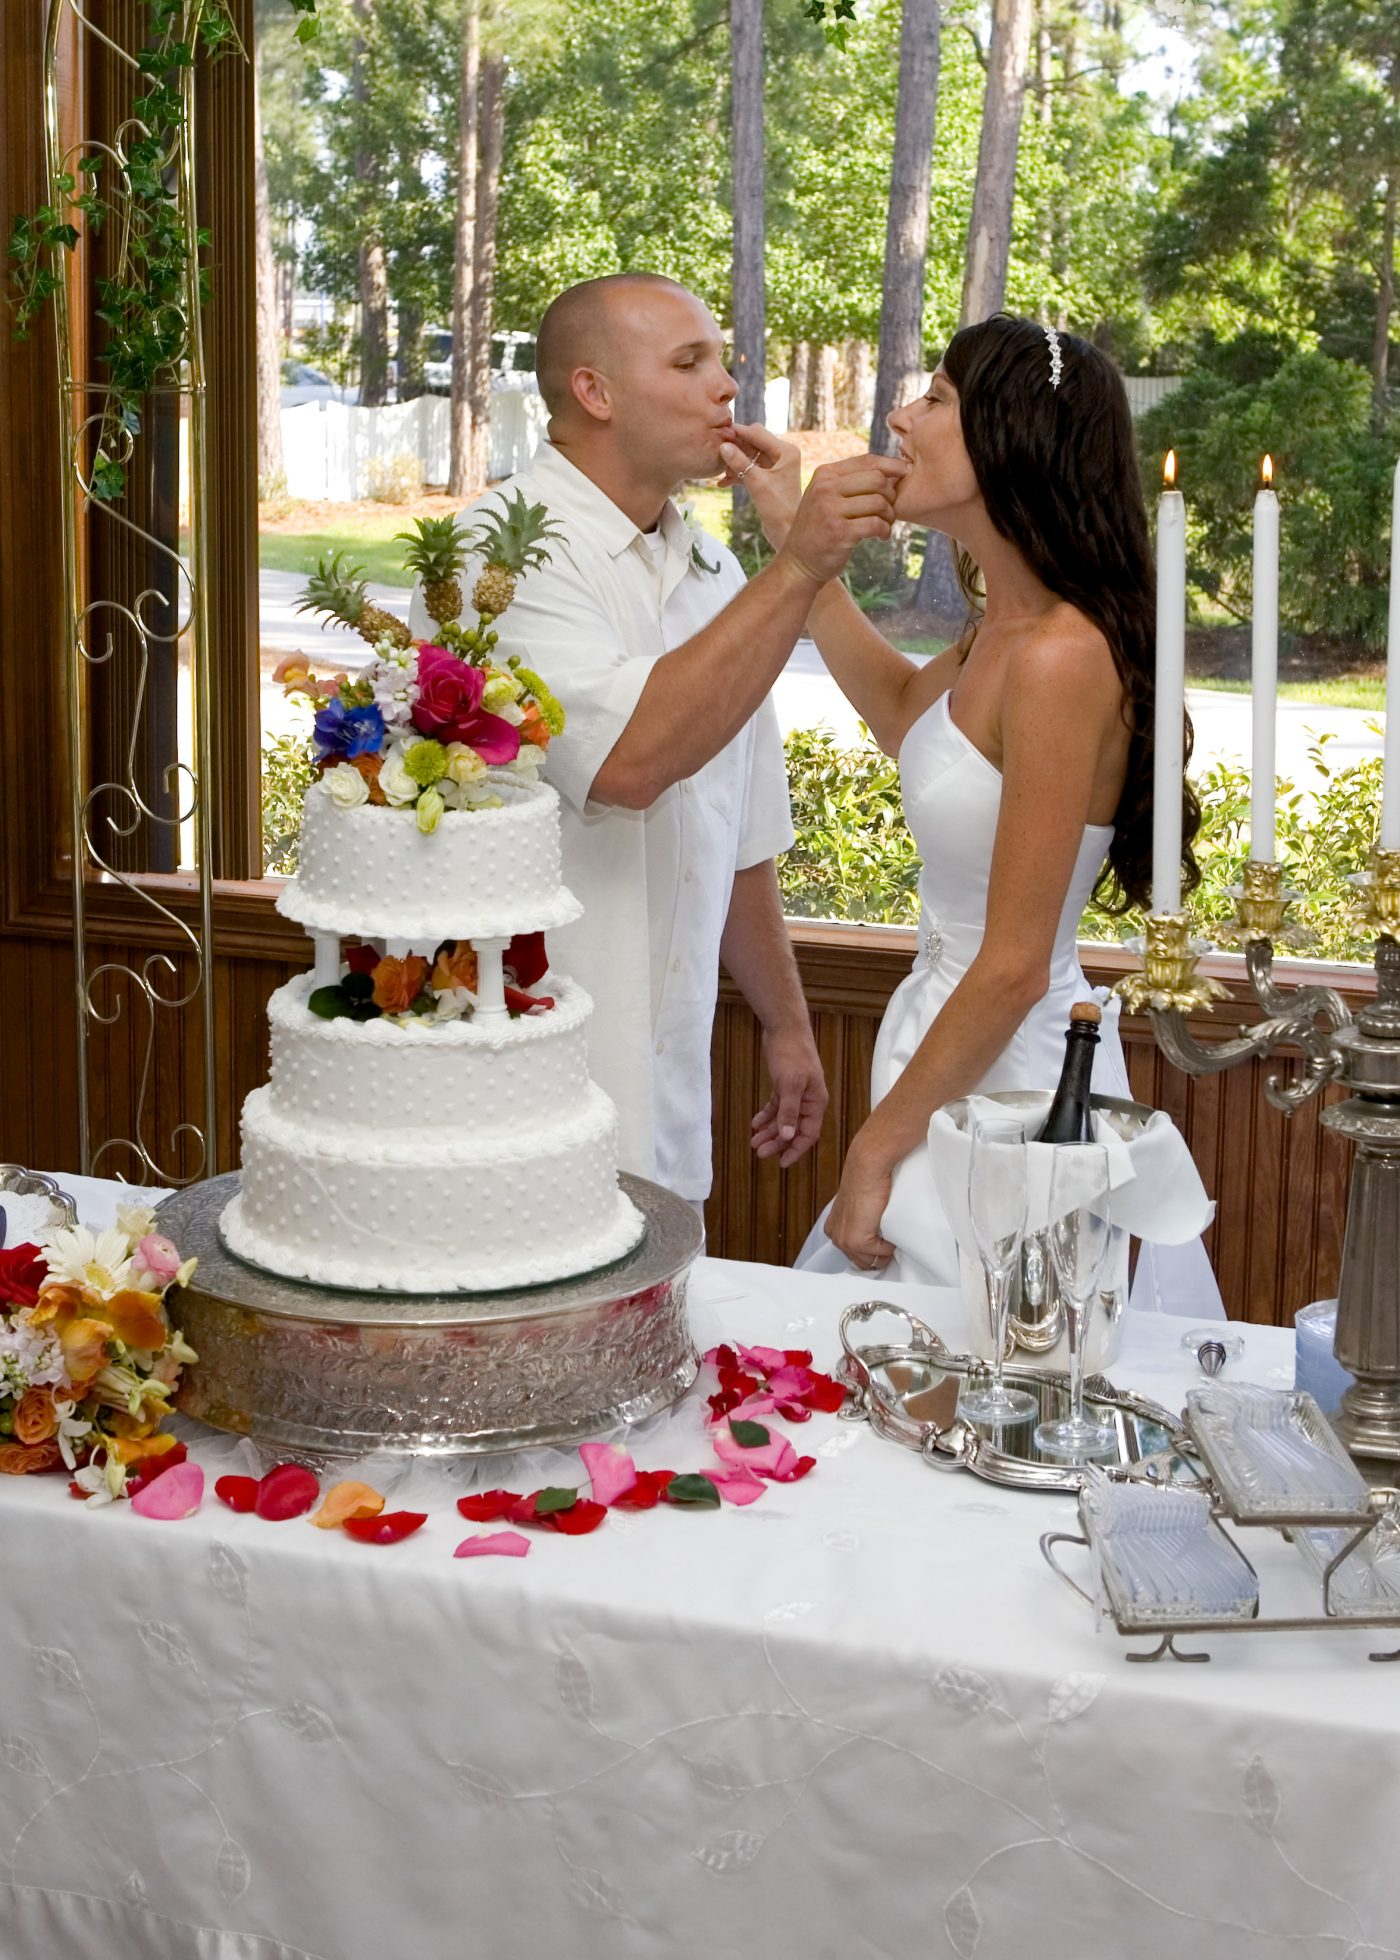 Cutting Wedding Cake